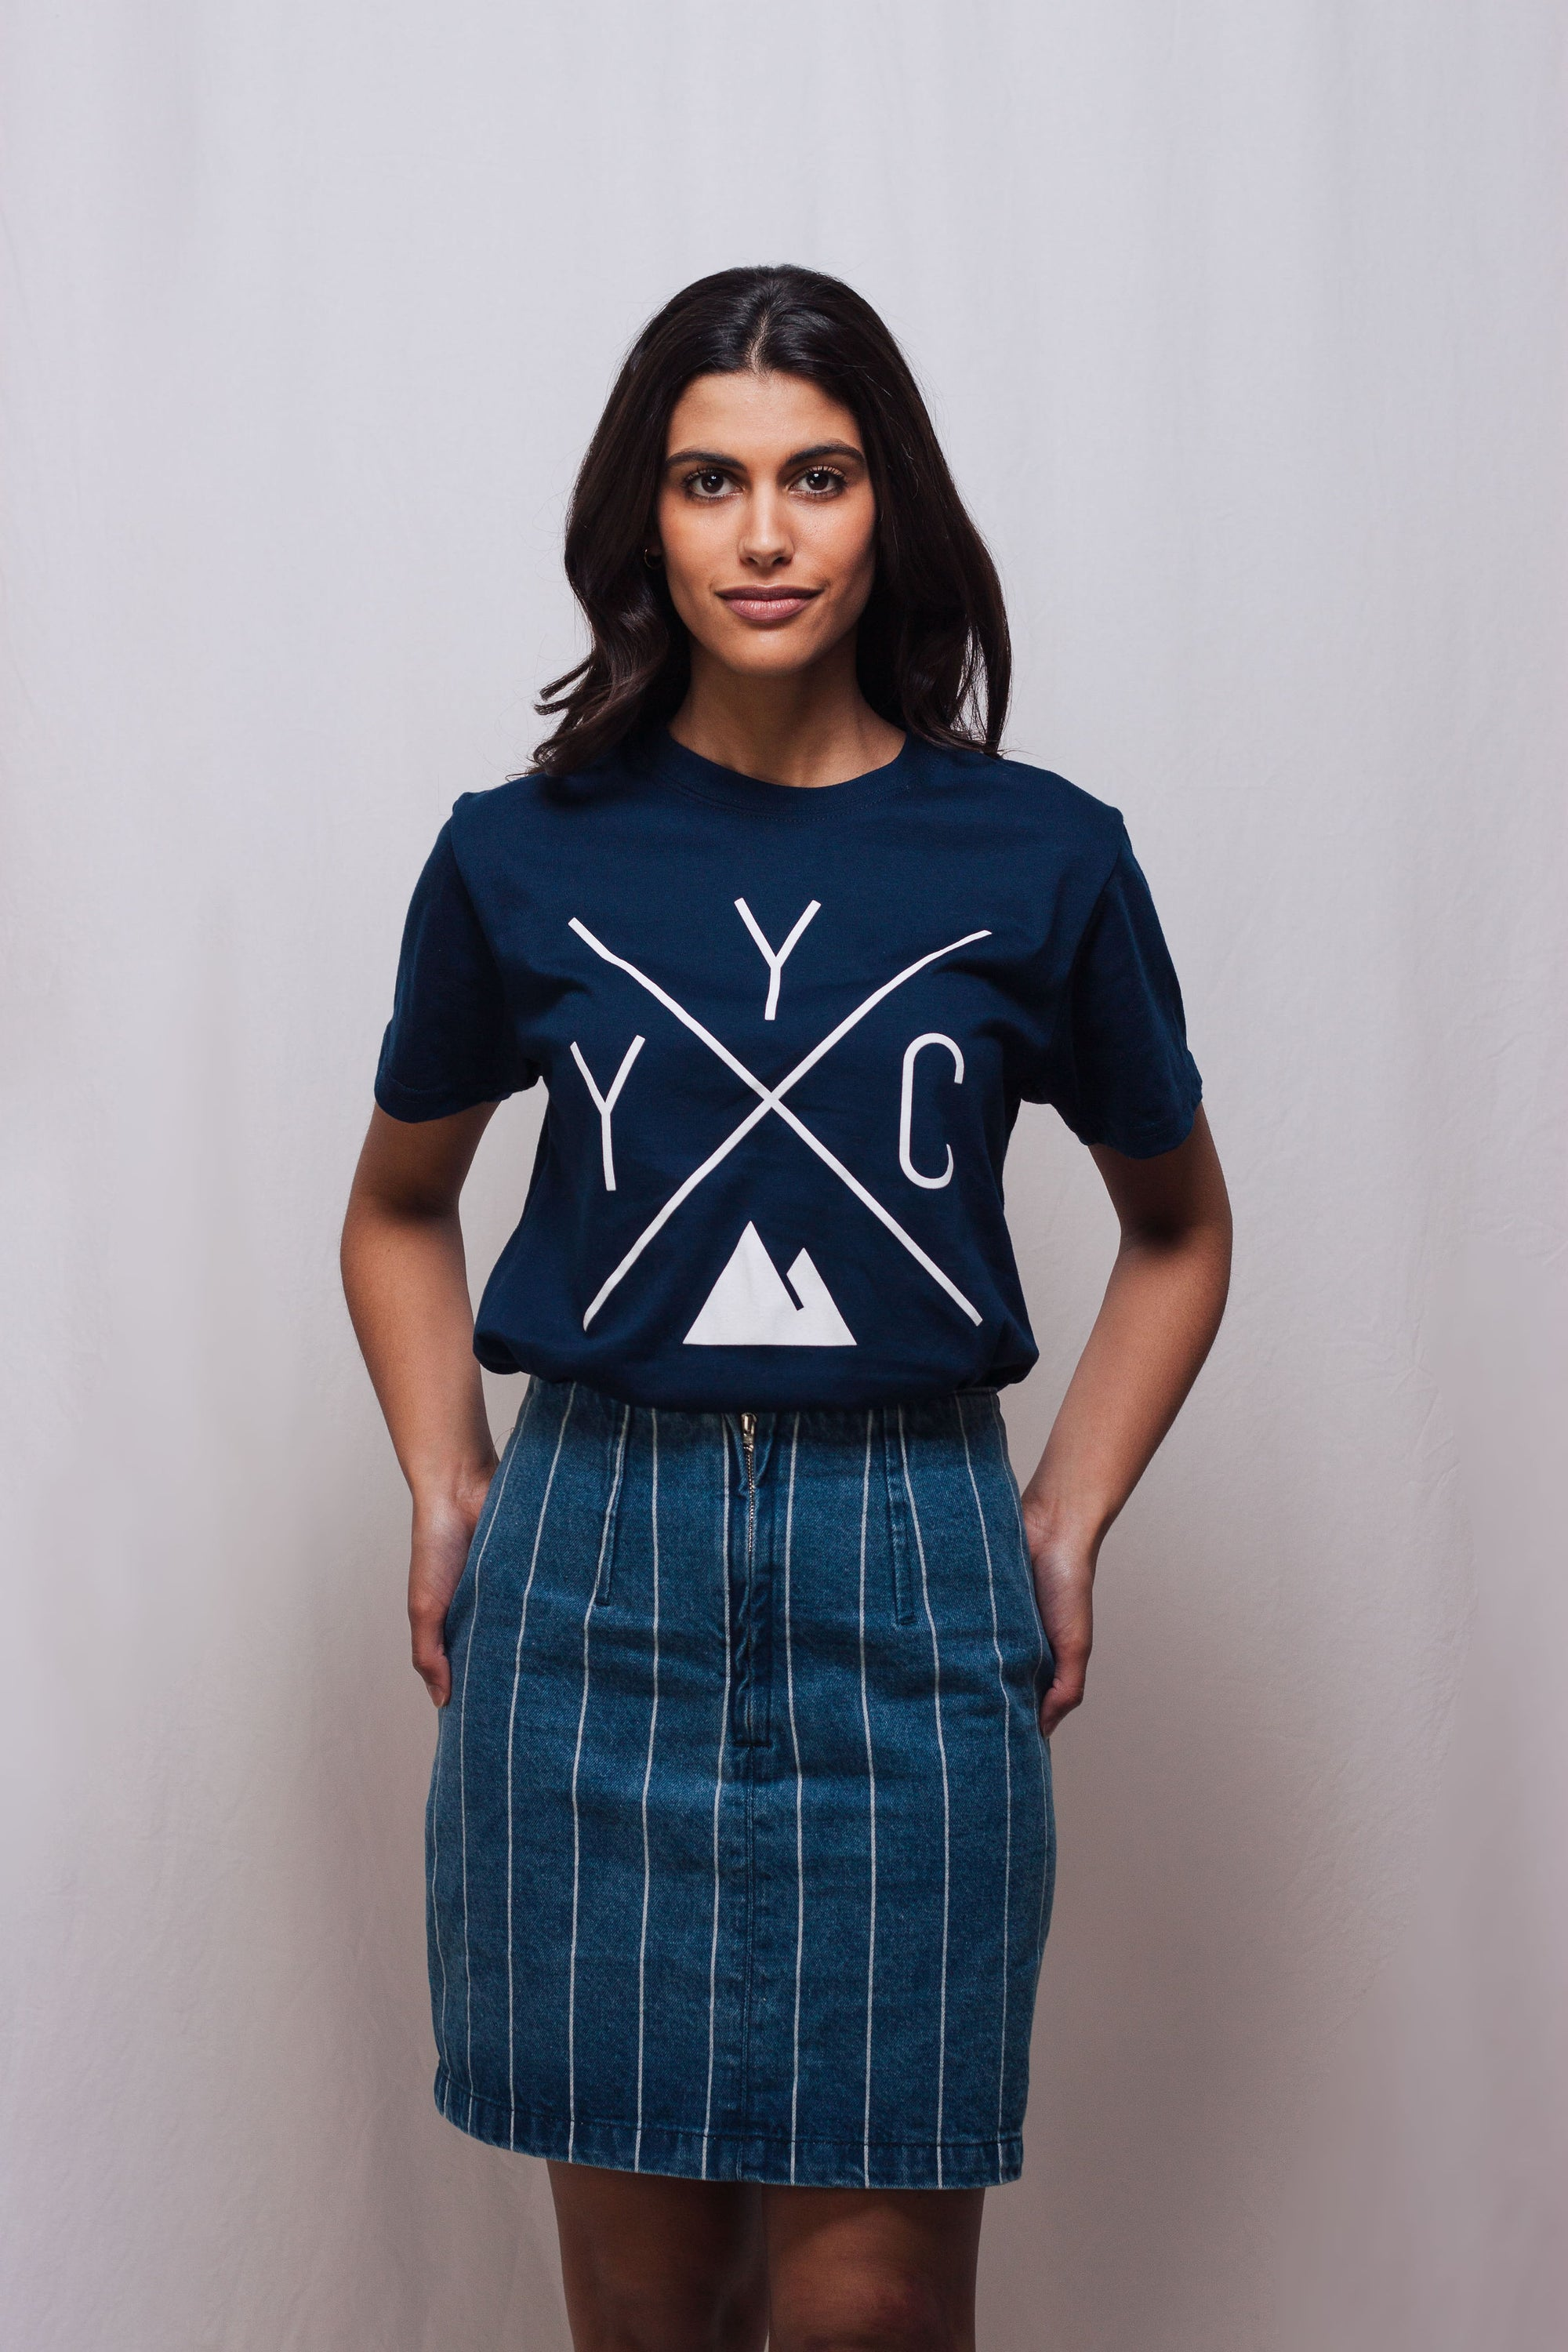 Made in Canada - YYC T-Shirt - X Design - Unisex - Navy - Local Laundry